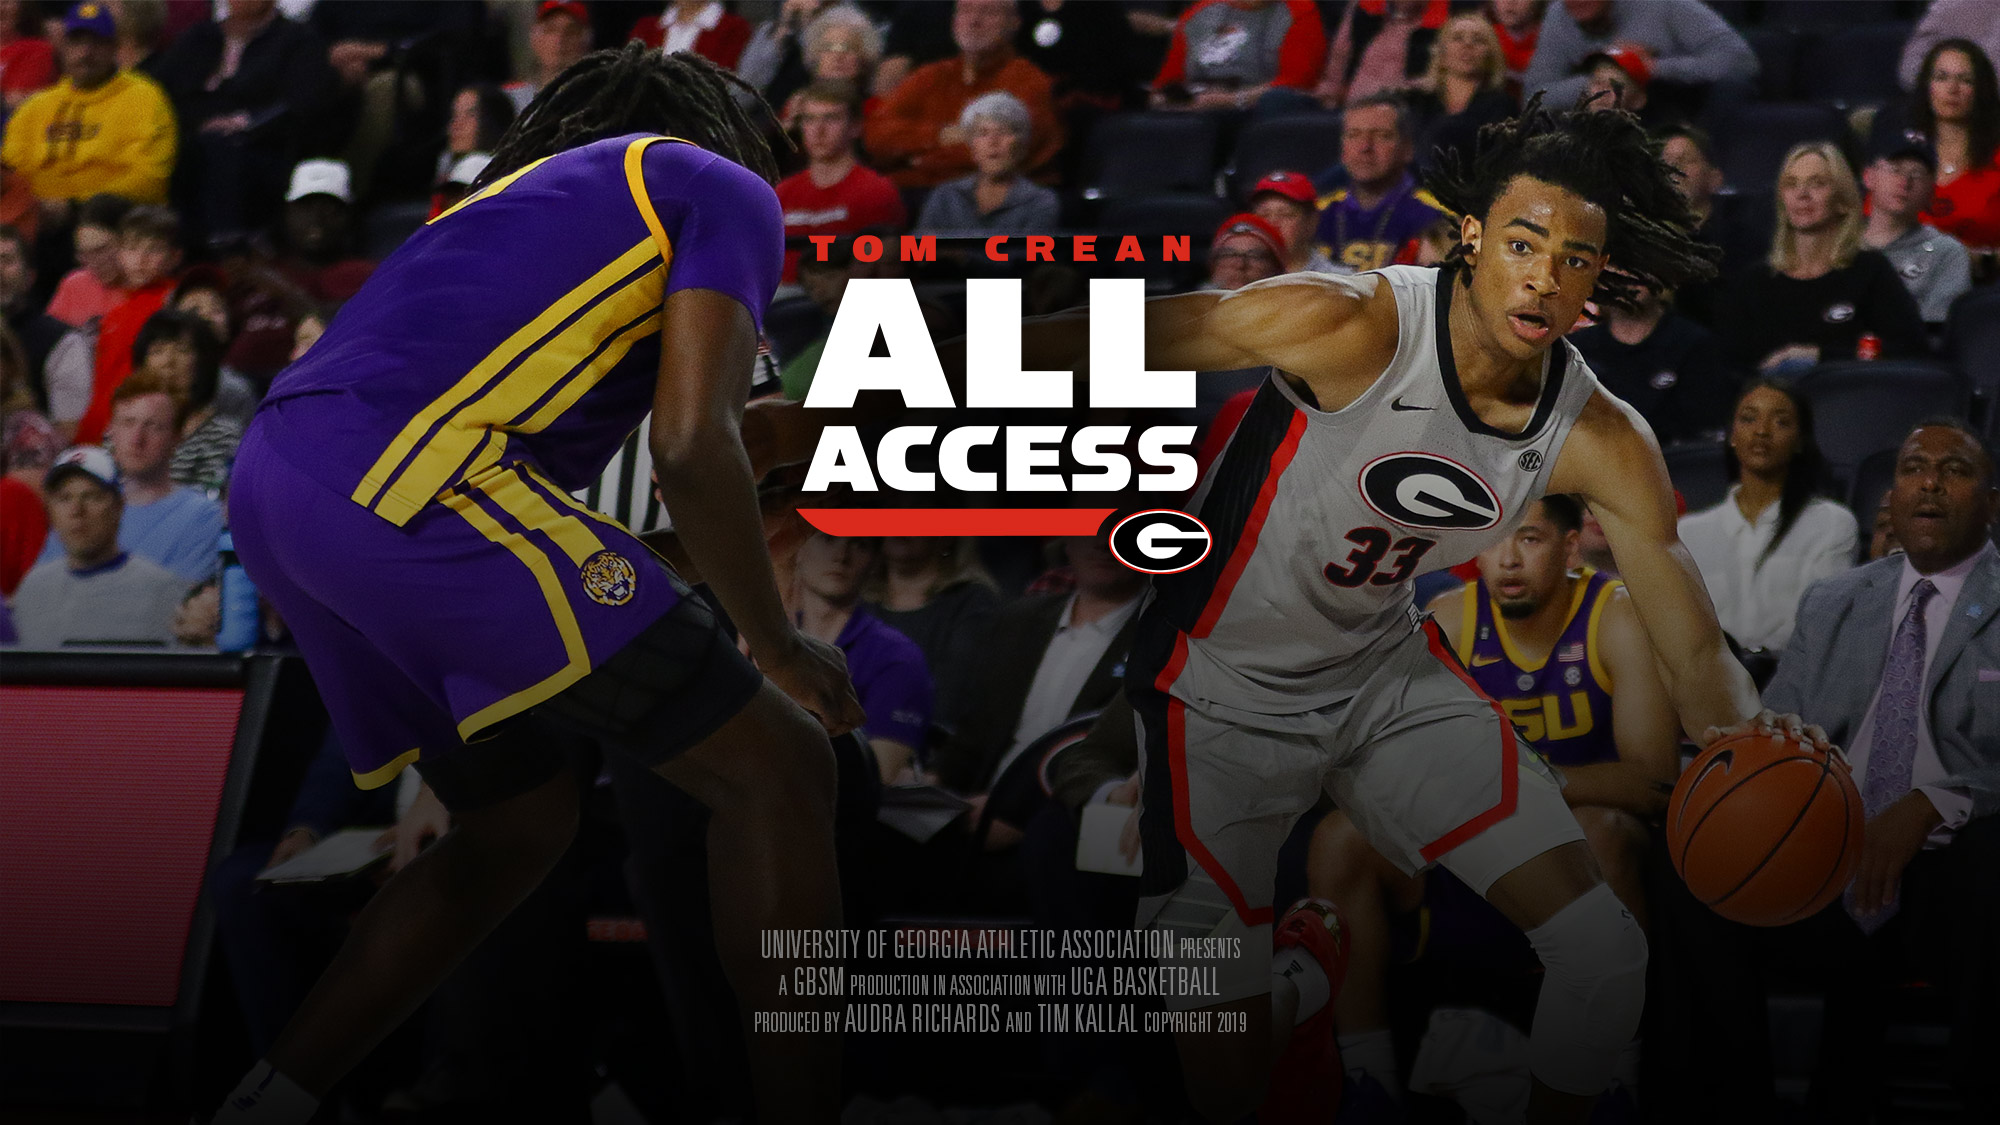 Tom Crean - All Access: Episode 10 - University of Georgia Athletics